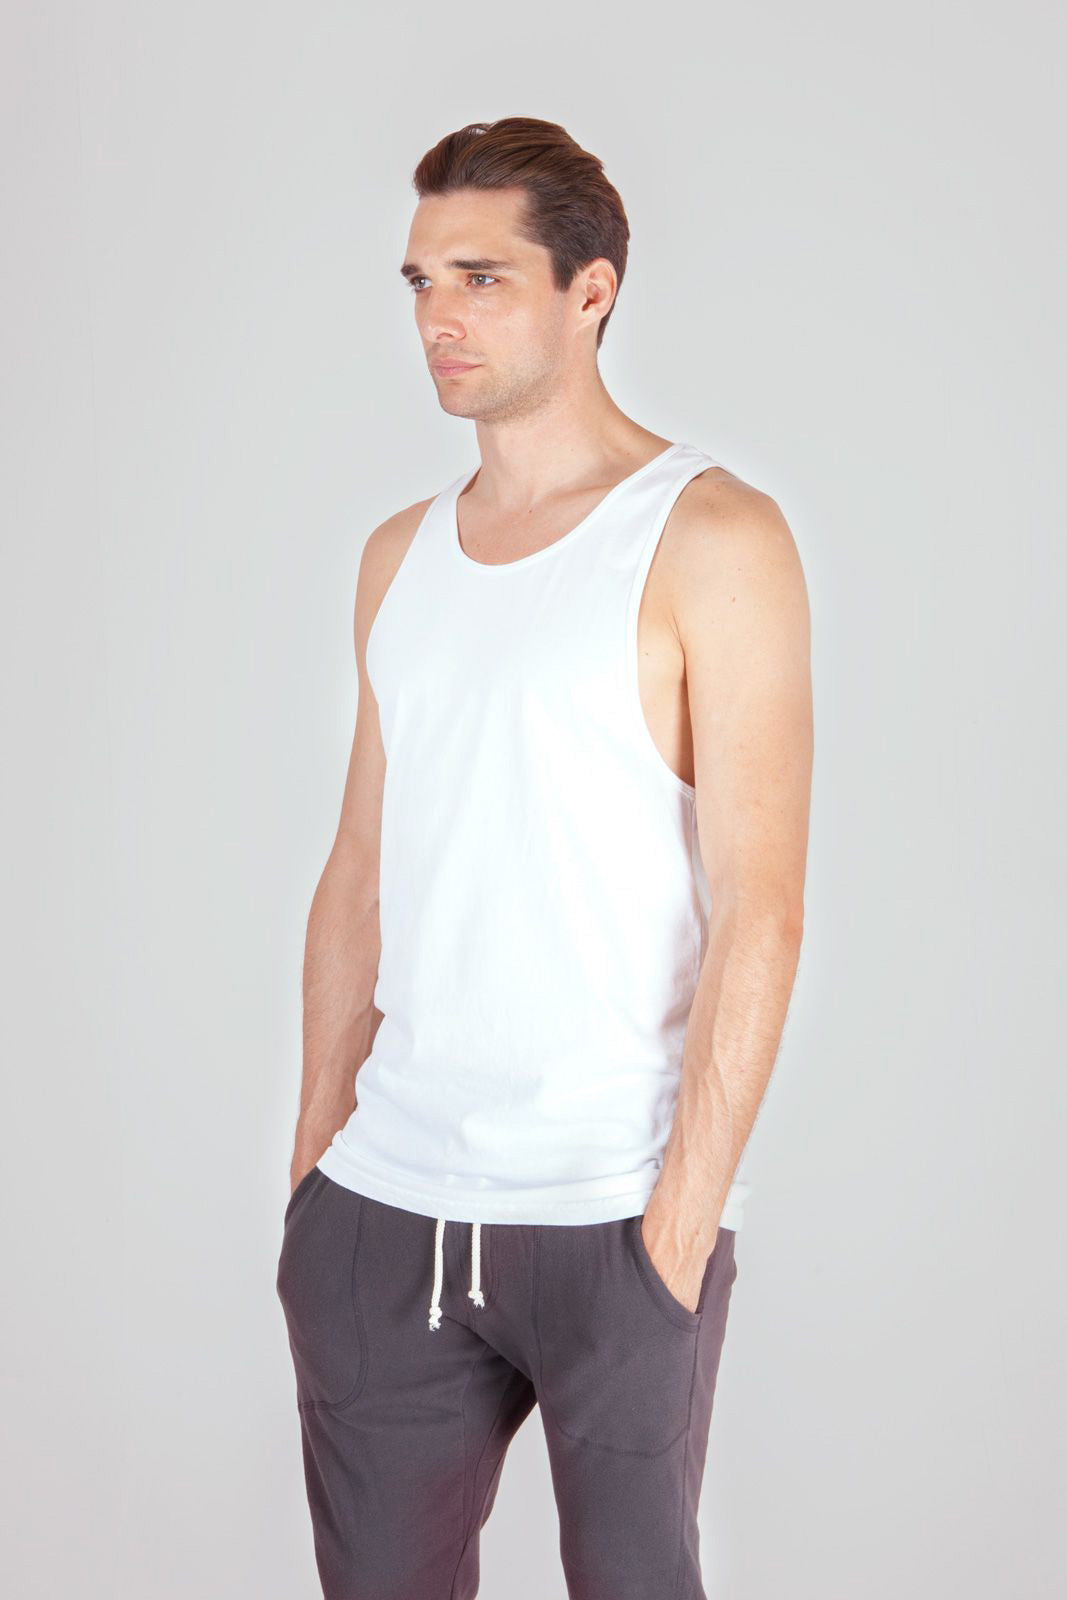 998f1935c10263 Classic Tank Top - American Made Supply Co